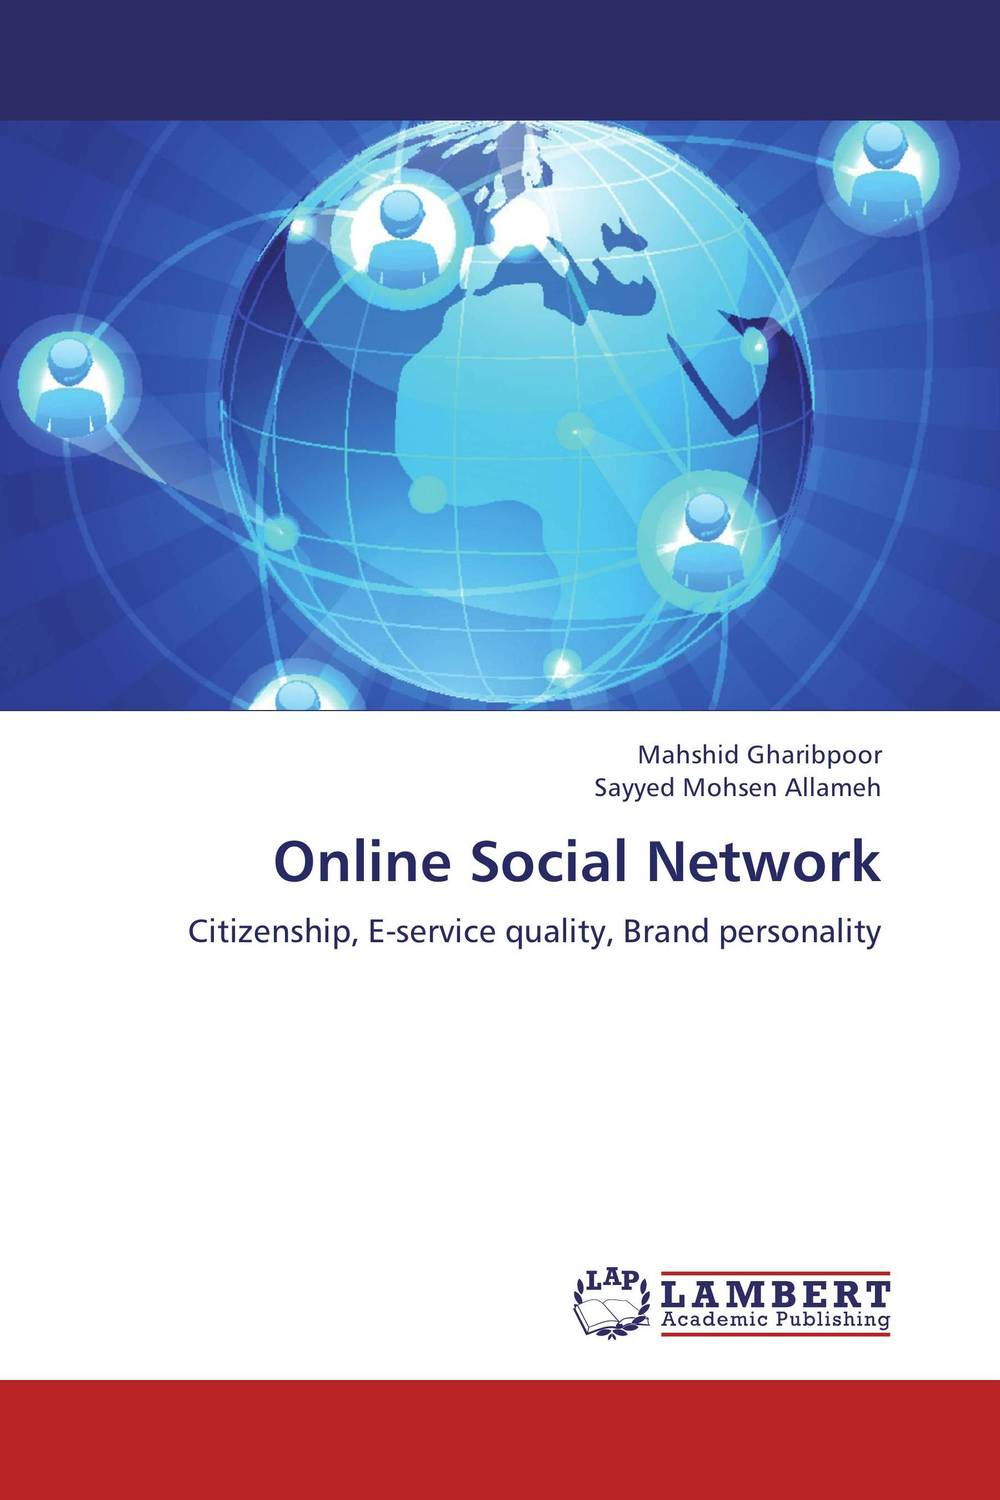 social phenomenon of electronic communication Facilitated communication the clinical and social phenomenon online guide books file id d560ac online guide books communication journal of autism and developmental disorders on deepdyve the clinical and social.